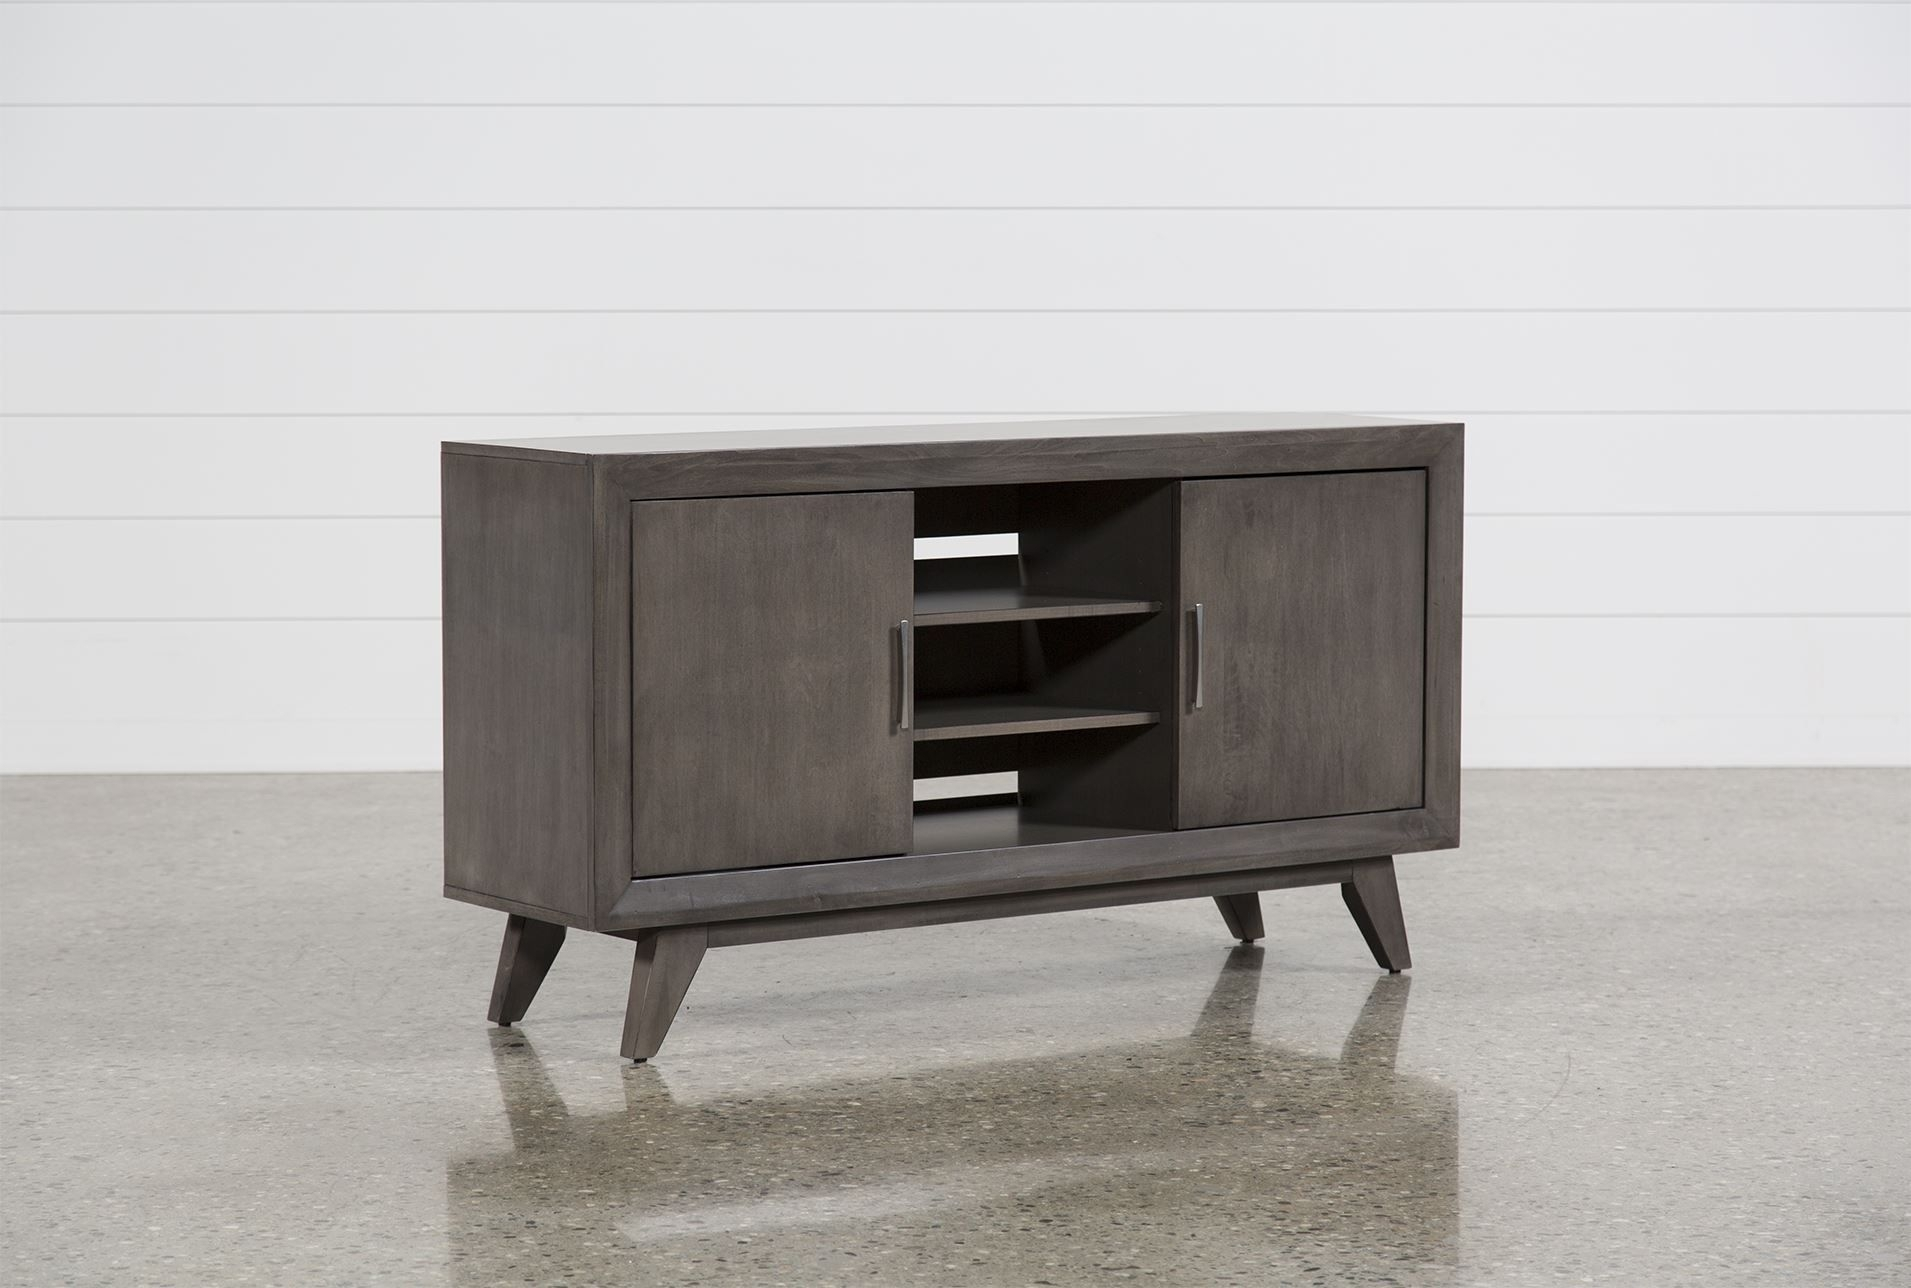 Abbott Driftwood 60 Inch Tv Console - Living Spaces | Living Room for Moraga Live Edge 8 Door Sideboards (Image 9 of 30)